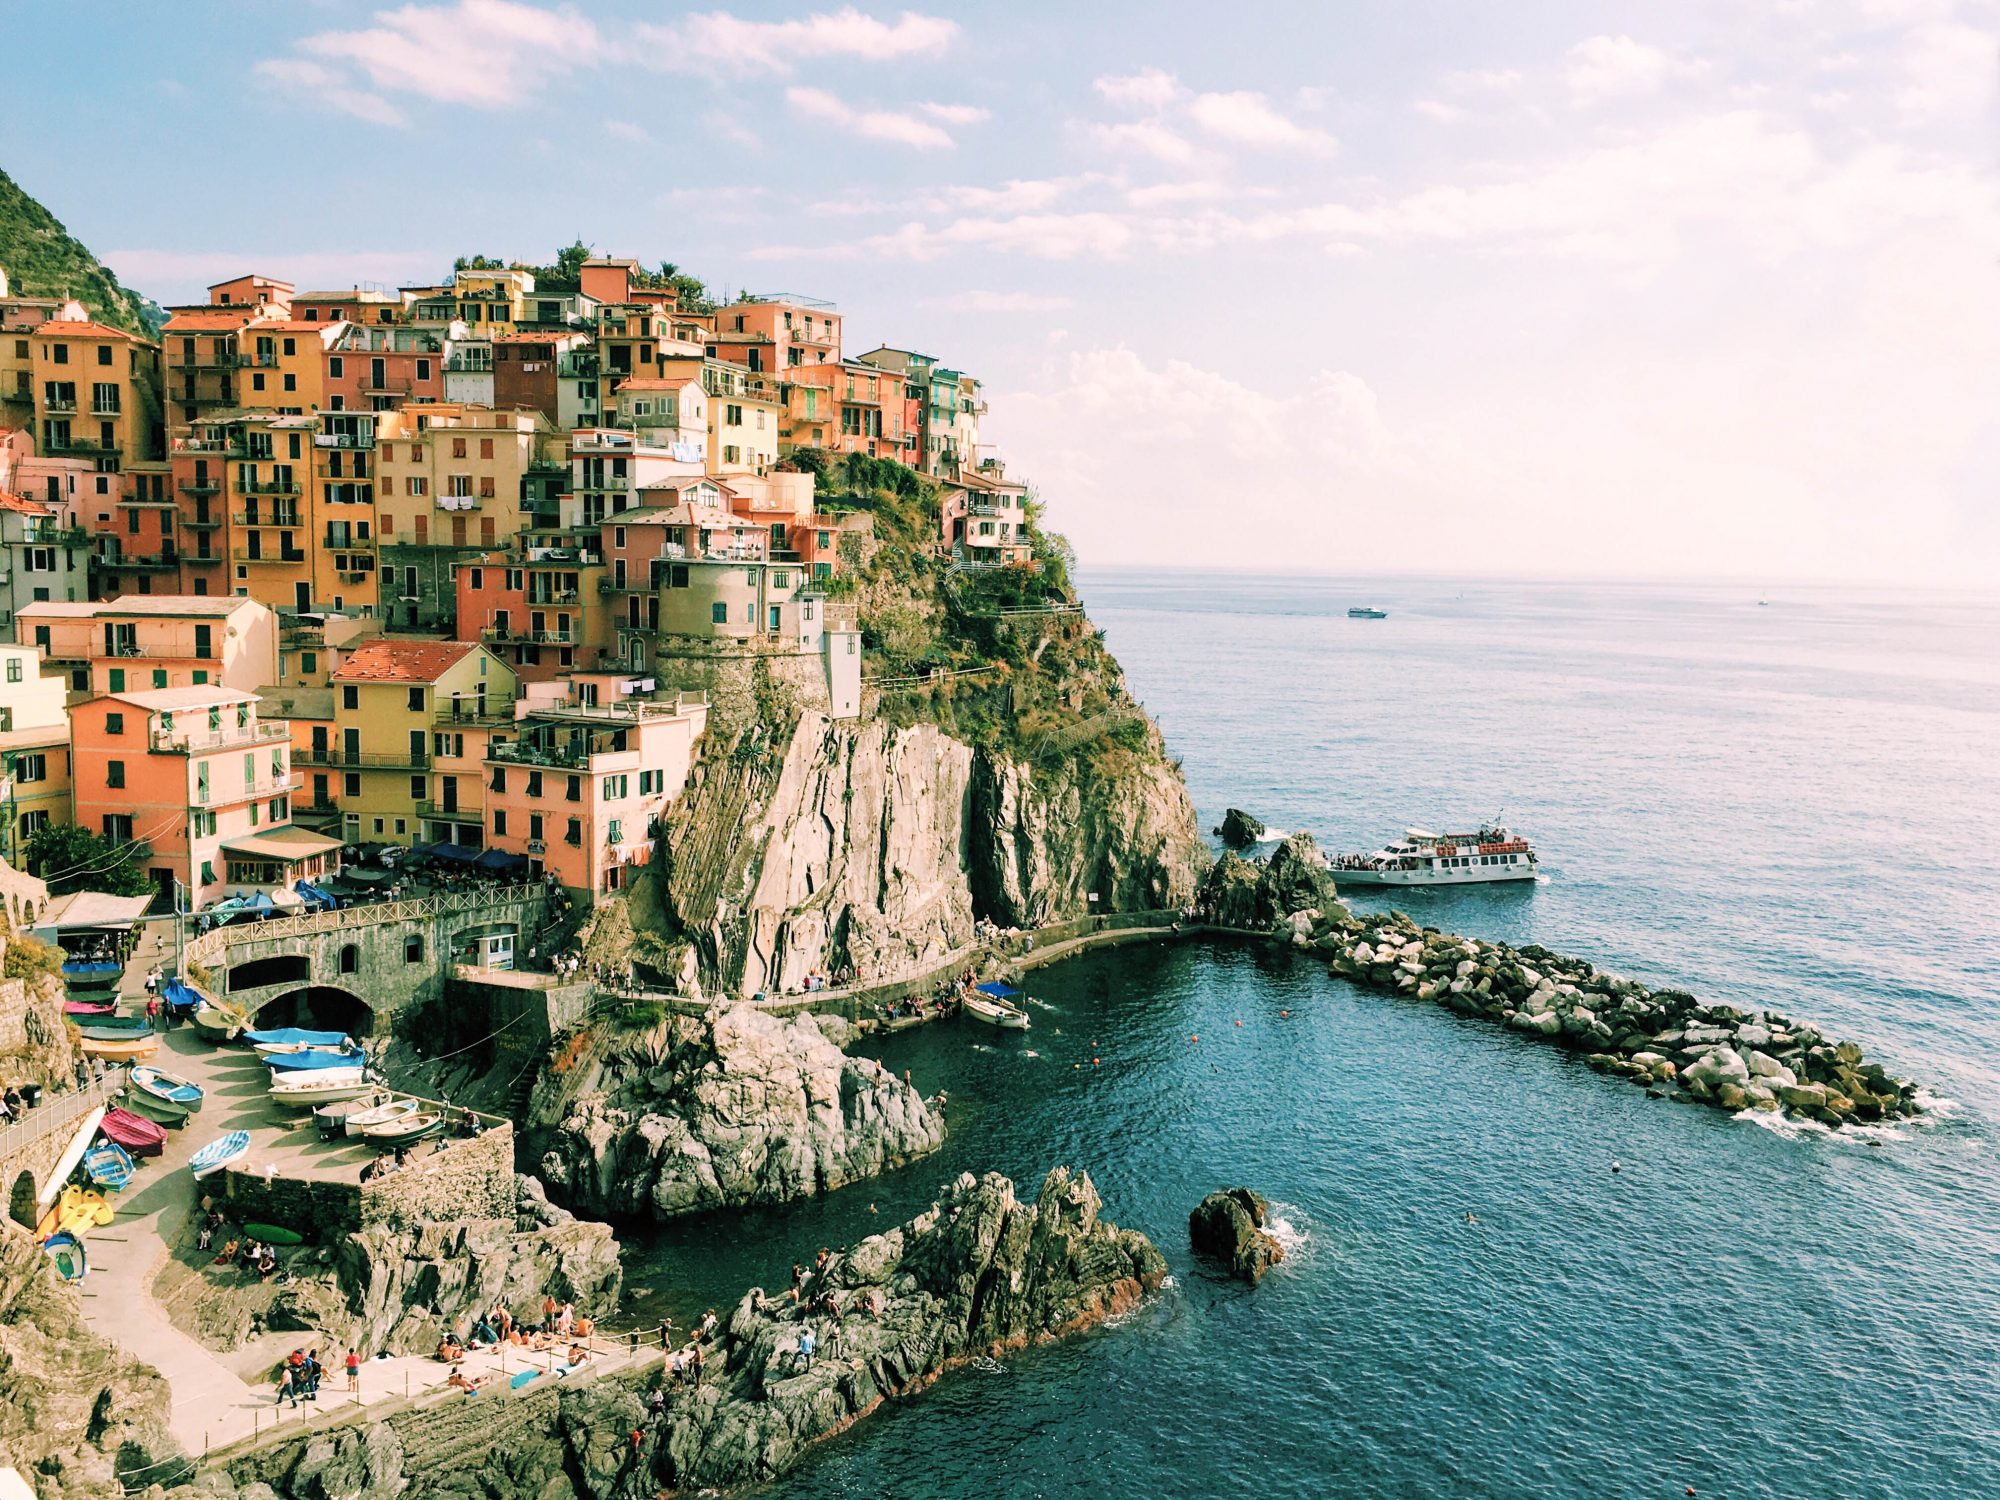 Aerial view of Manarola Italy one of the Cinque Terre towns on SelfishMe Travel LLC